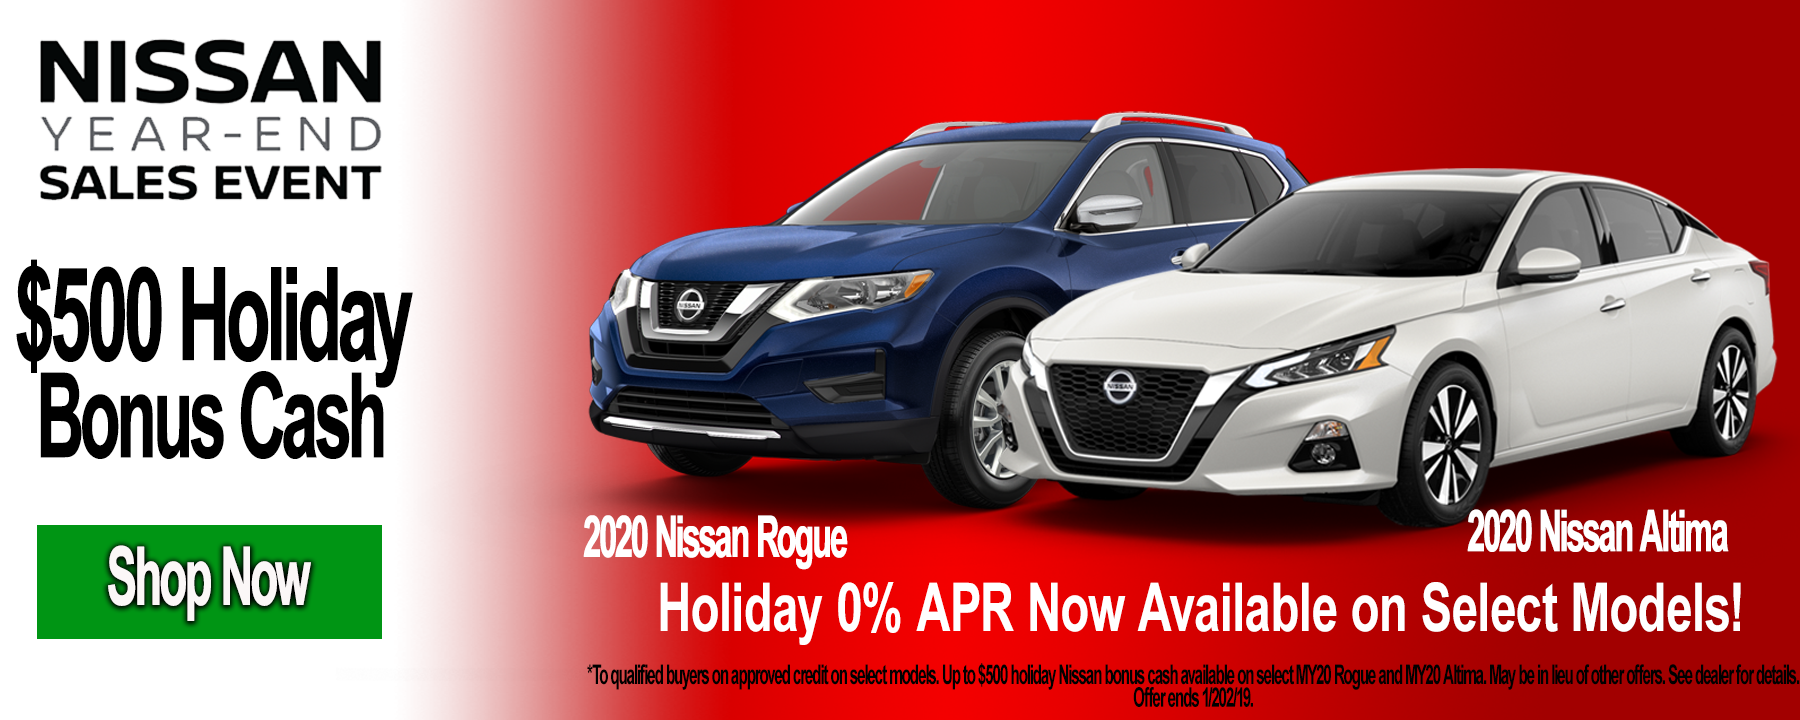 Receive an Extra $500 Nissan Holiday Bonus Cash on select 2020 Nissan Rogues or Altimas this holiday season!